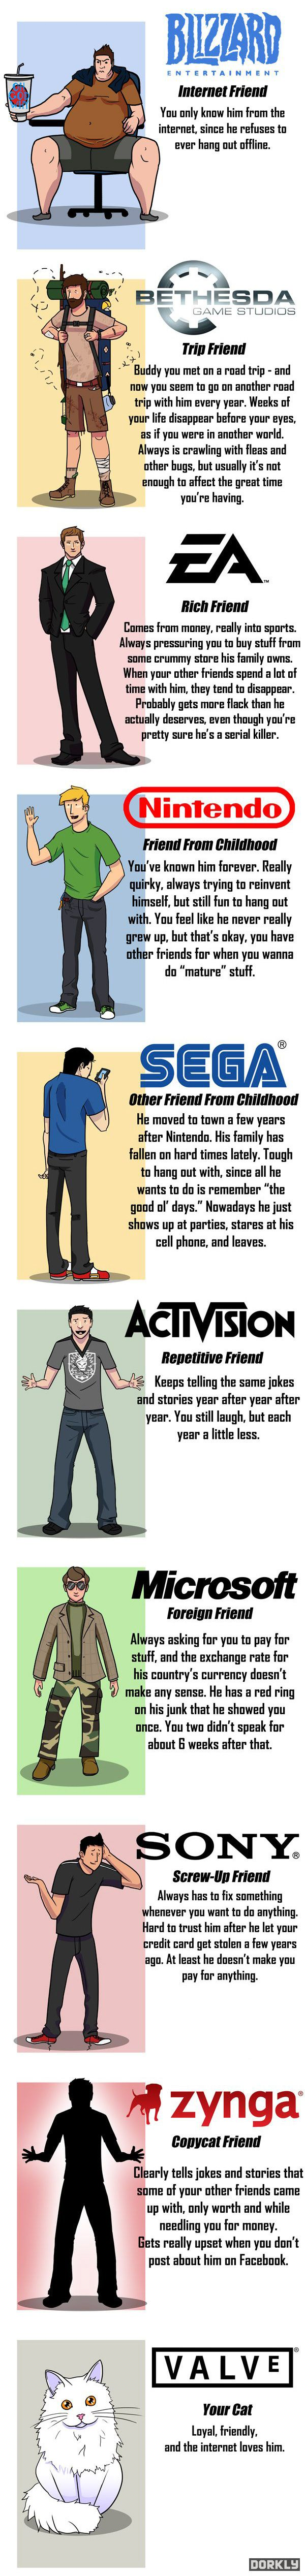 Gamer friends...Nailed it with Valve - love thsi beyond words